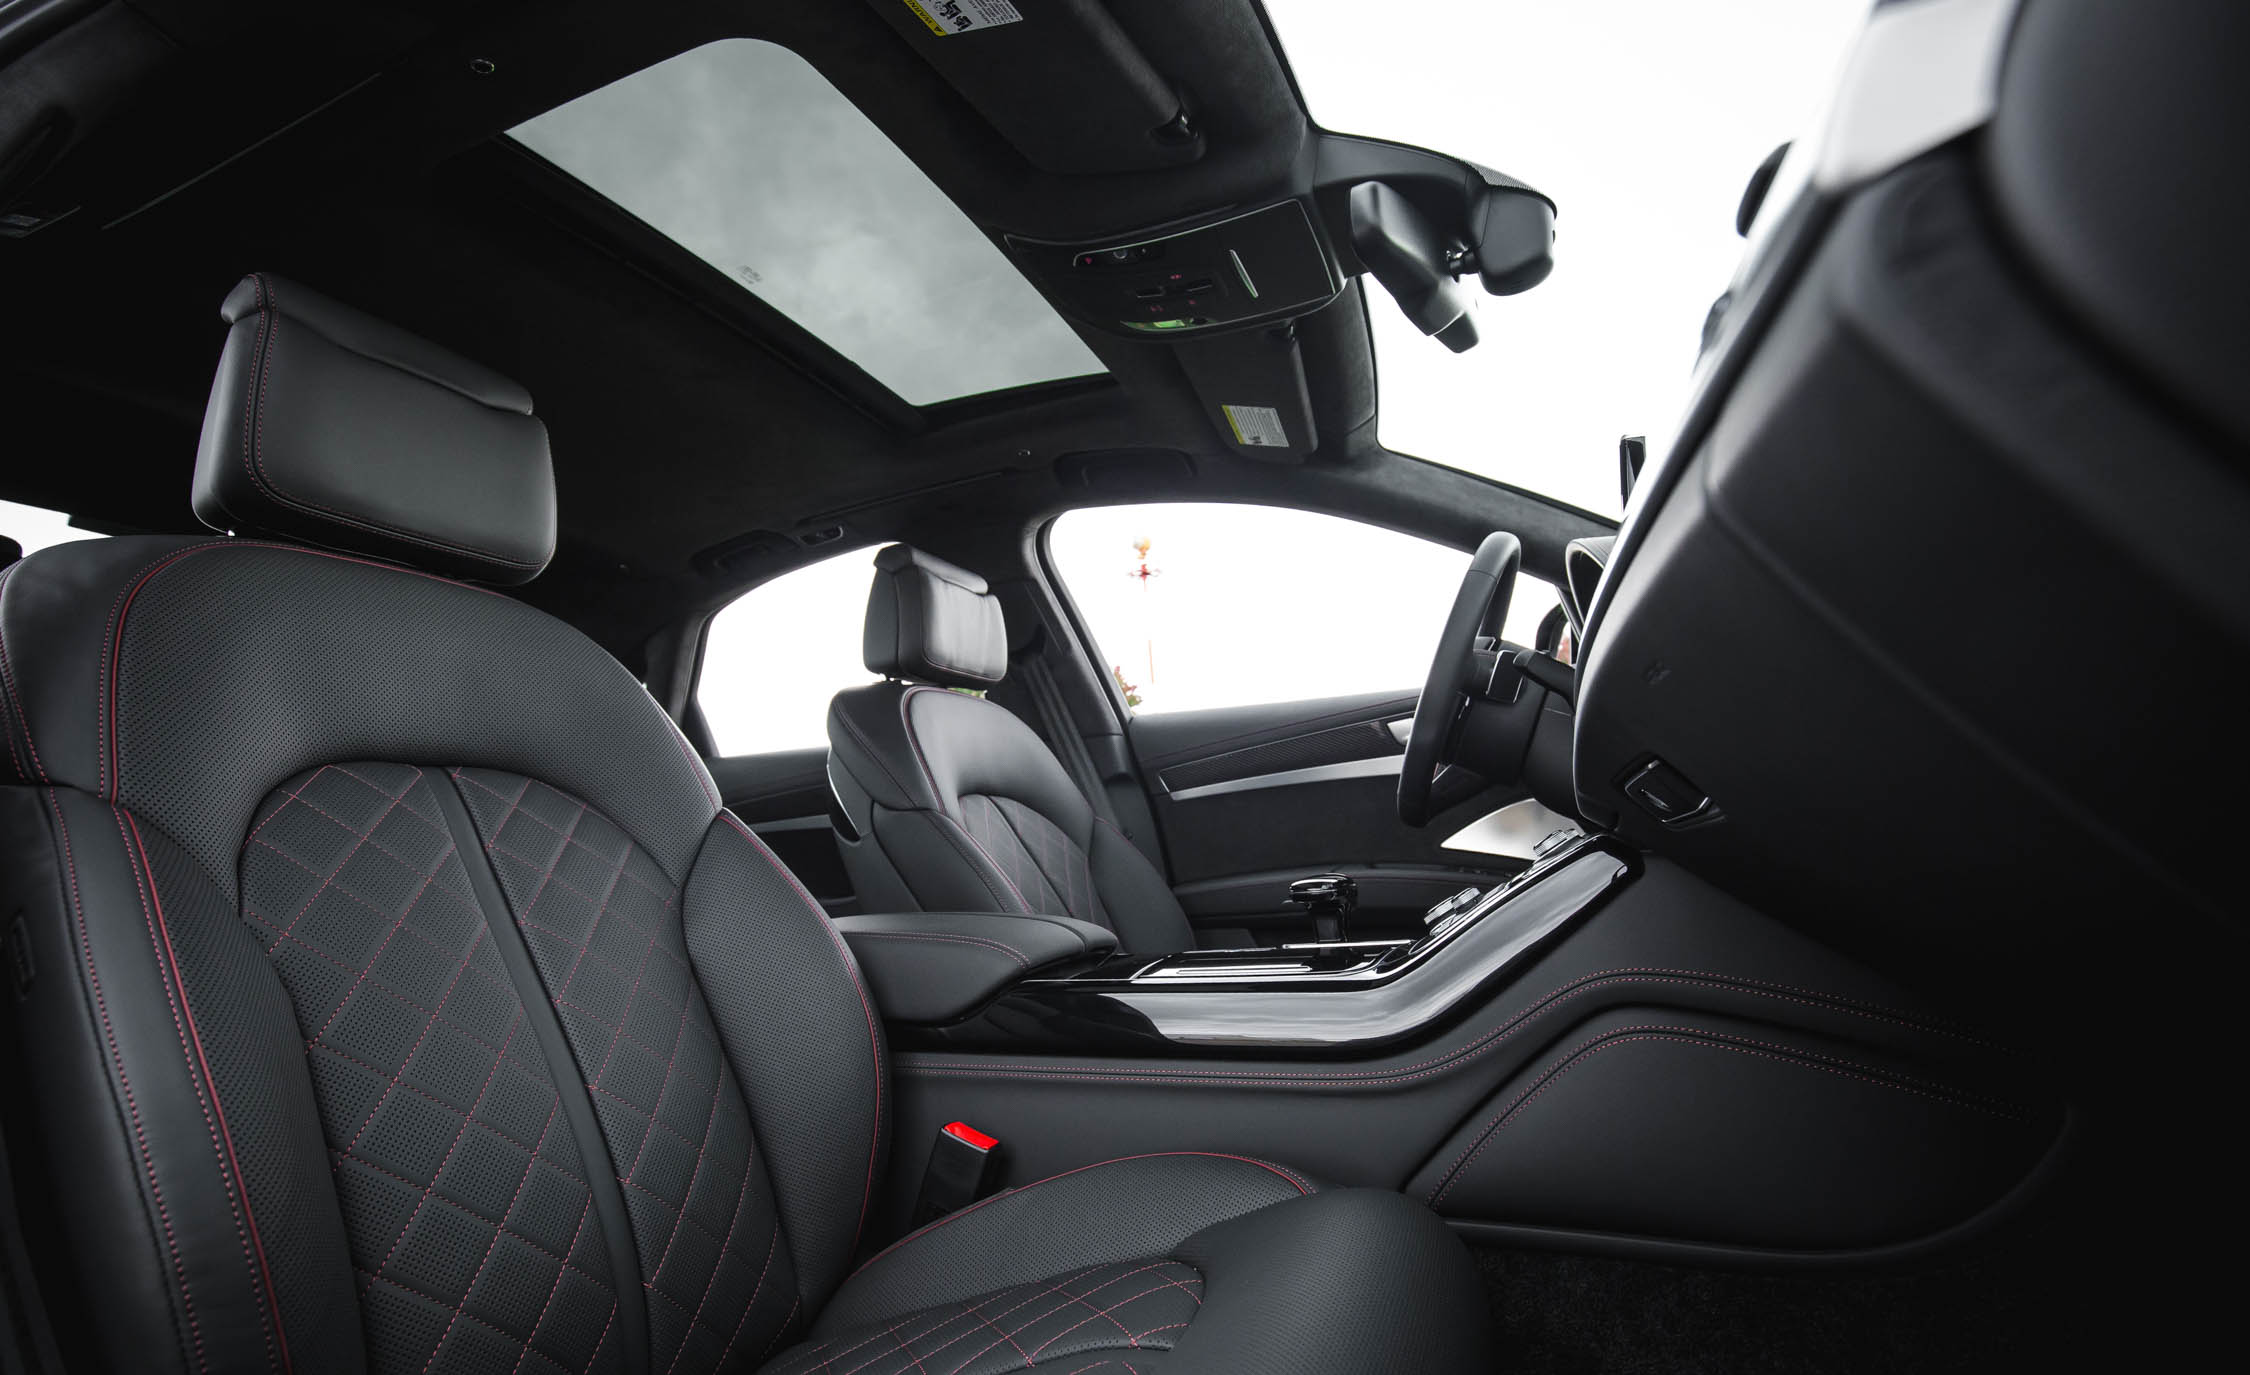 2017 Audi S8 Plus Interior Seats Front (Photo 17 of 36)